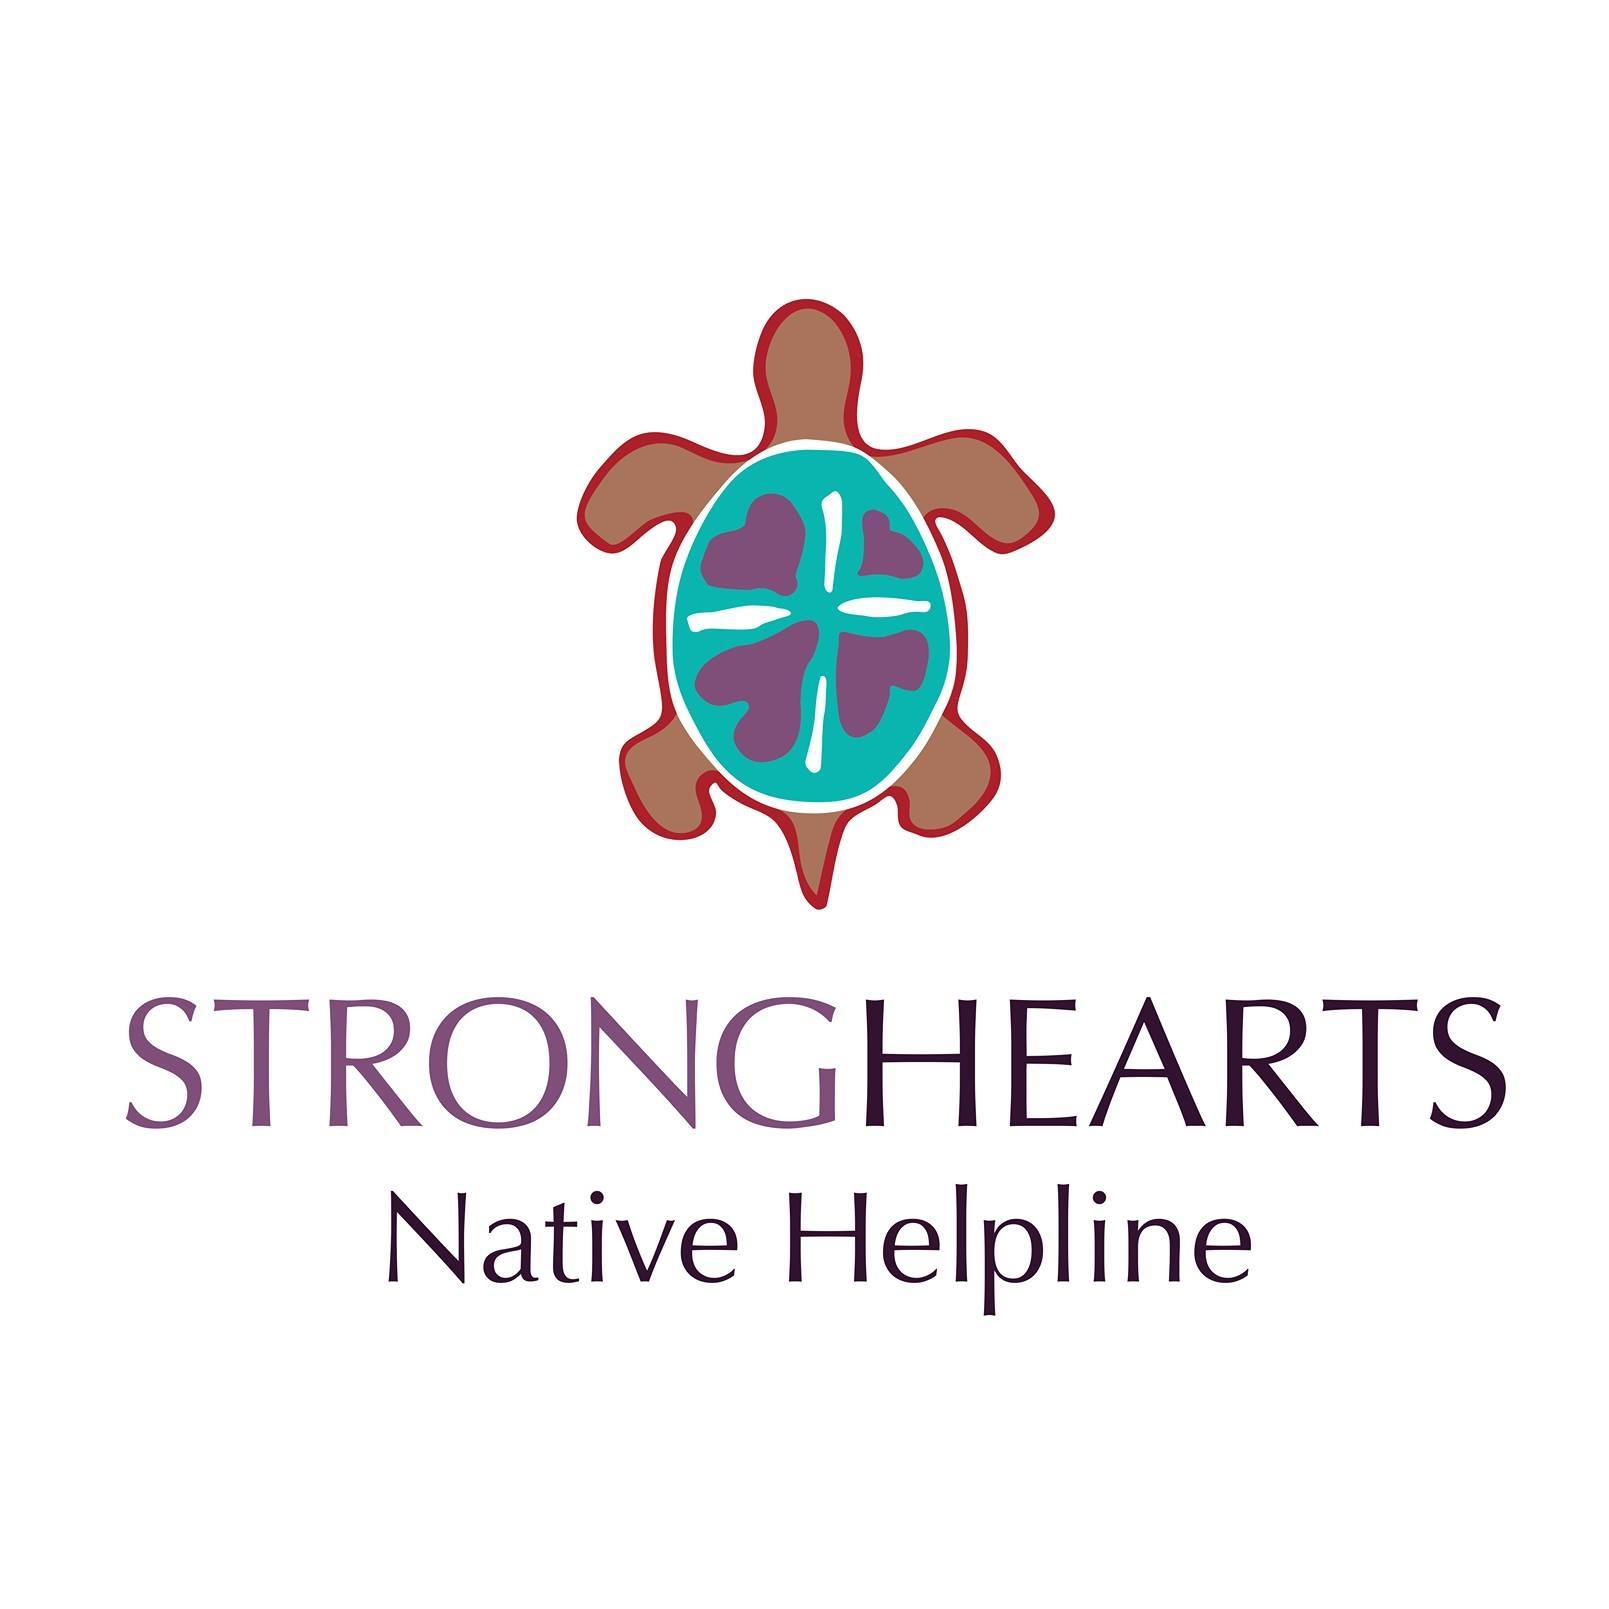 National Native Crisis-Line launches for Native American survivors of domestic violence and dating violence